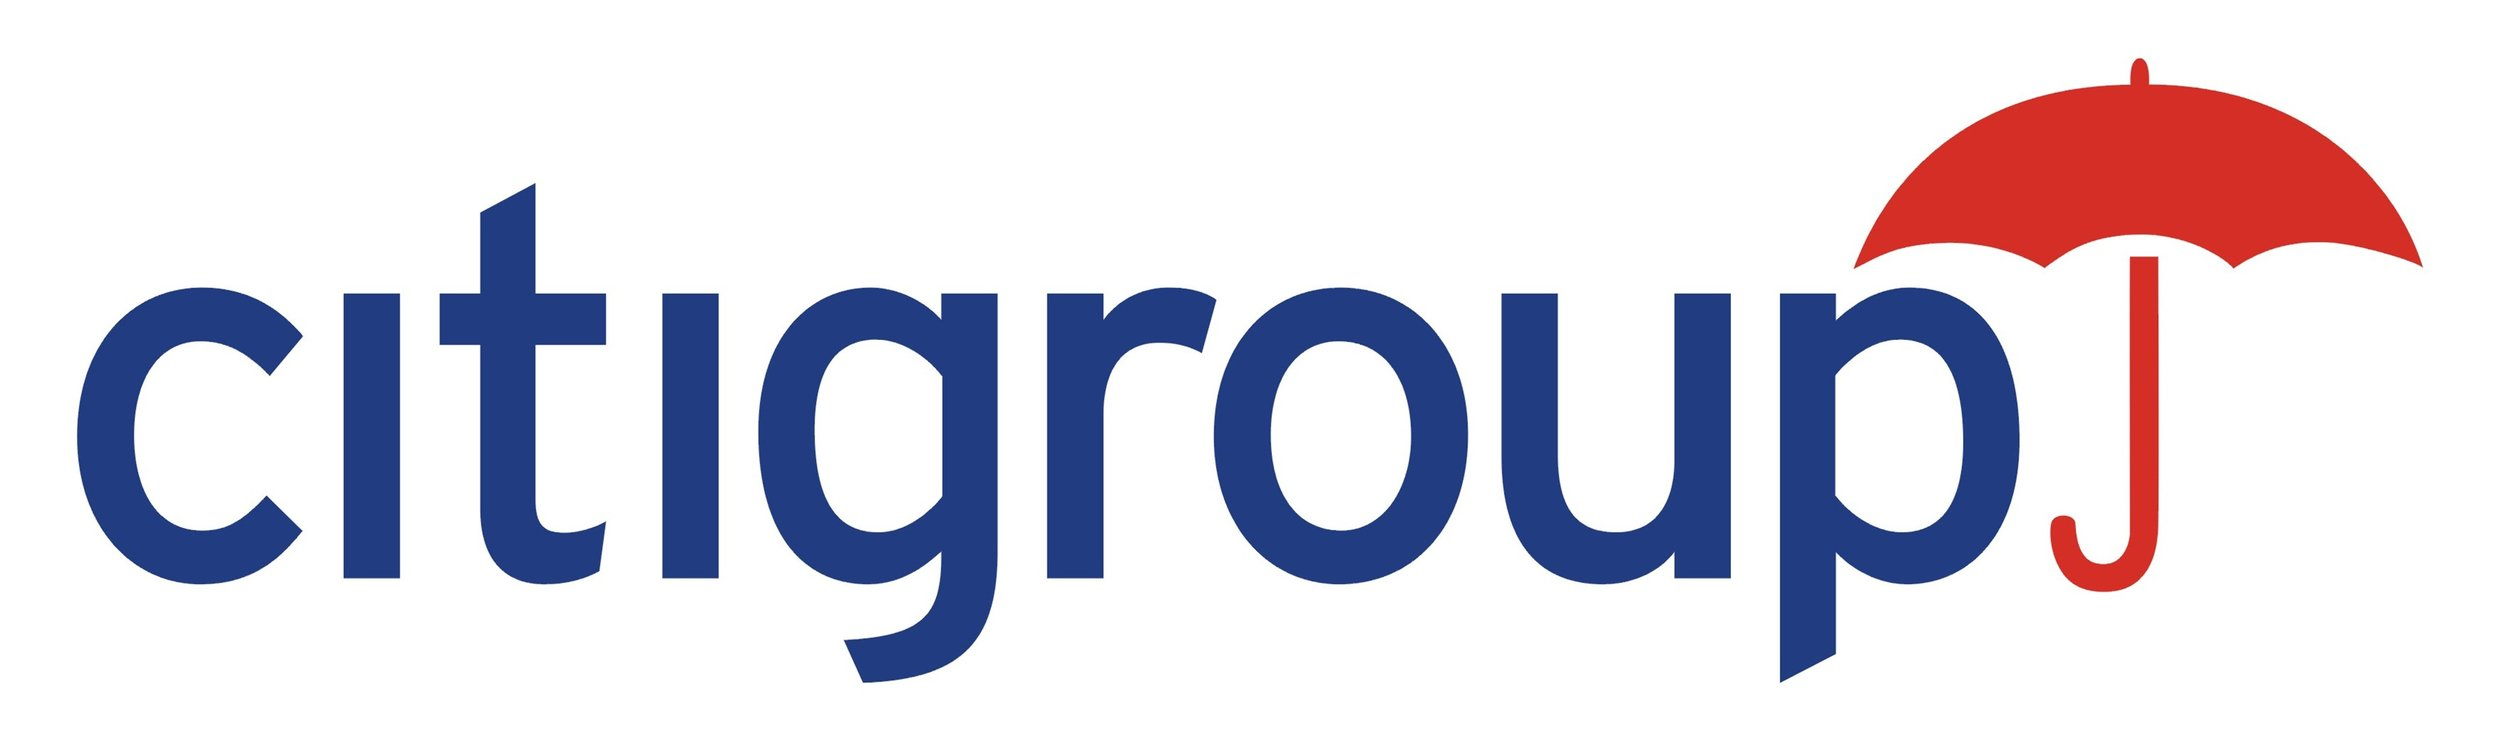 citigroup-logo.jpg